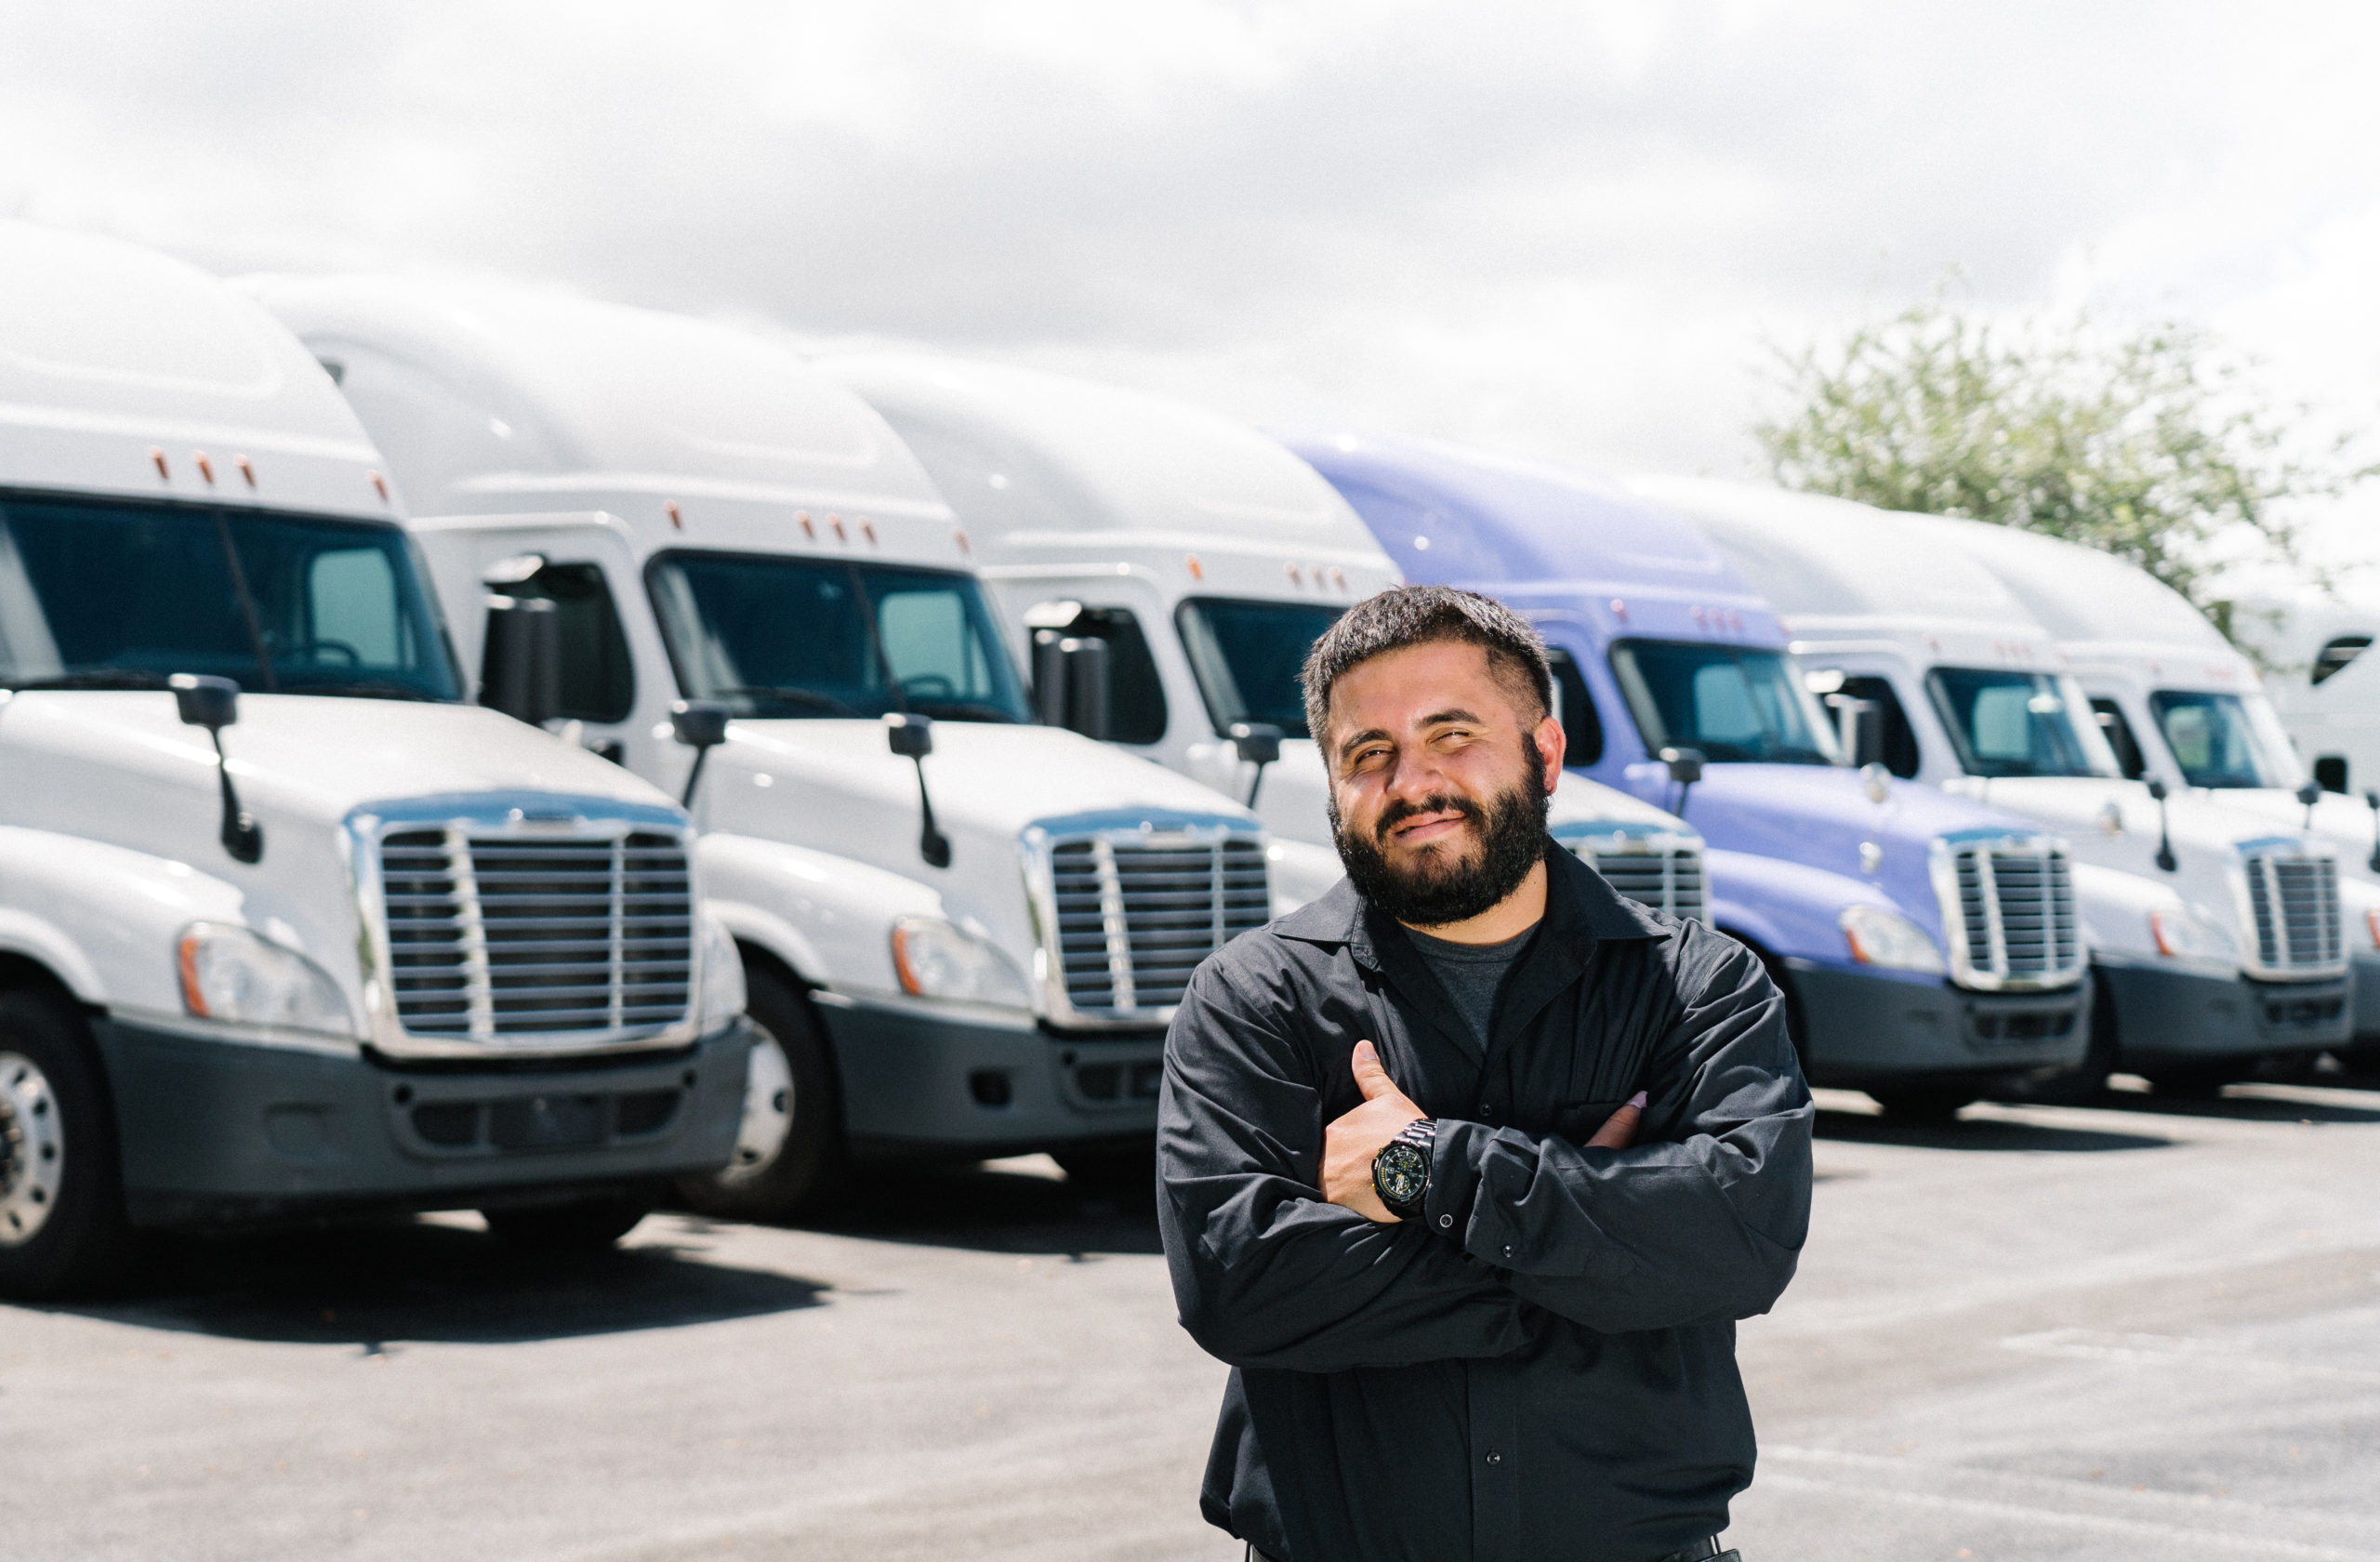 A Fleet Owner Stands in Front of Tractor Vehicles He has Listed on COOP